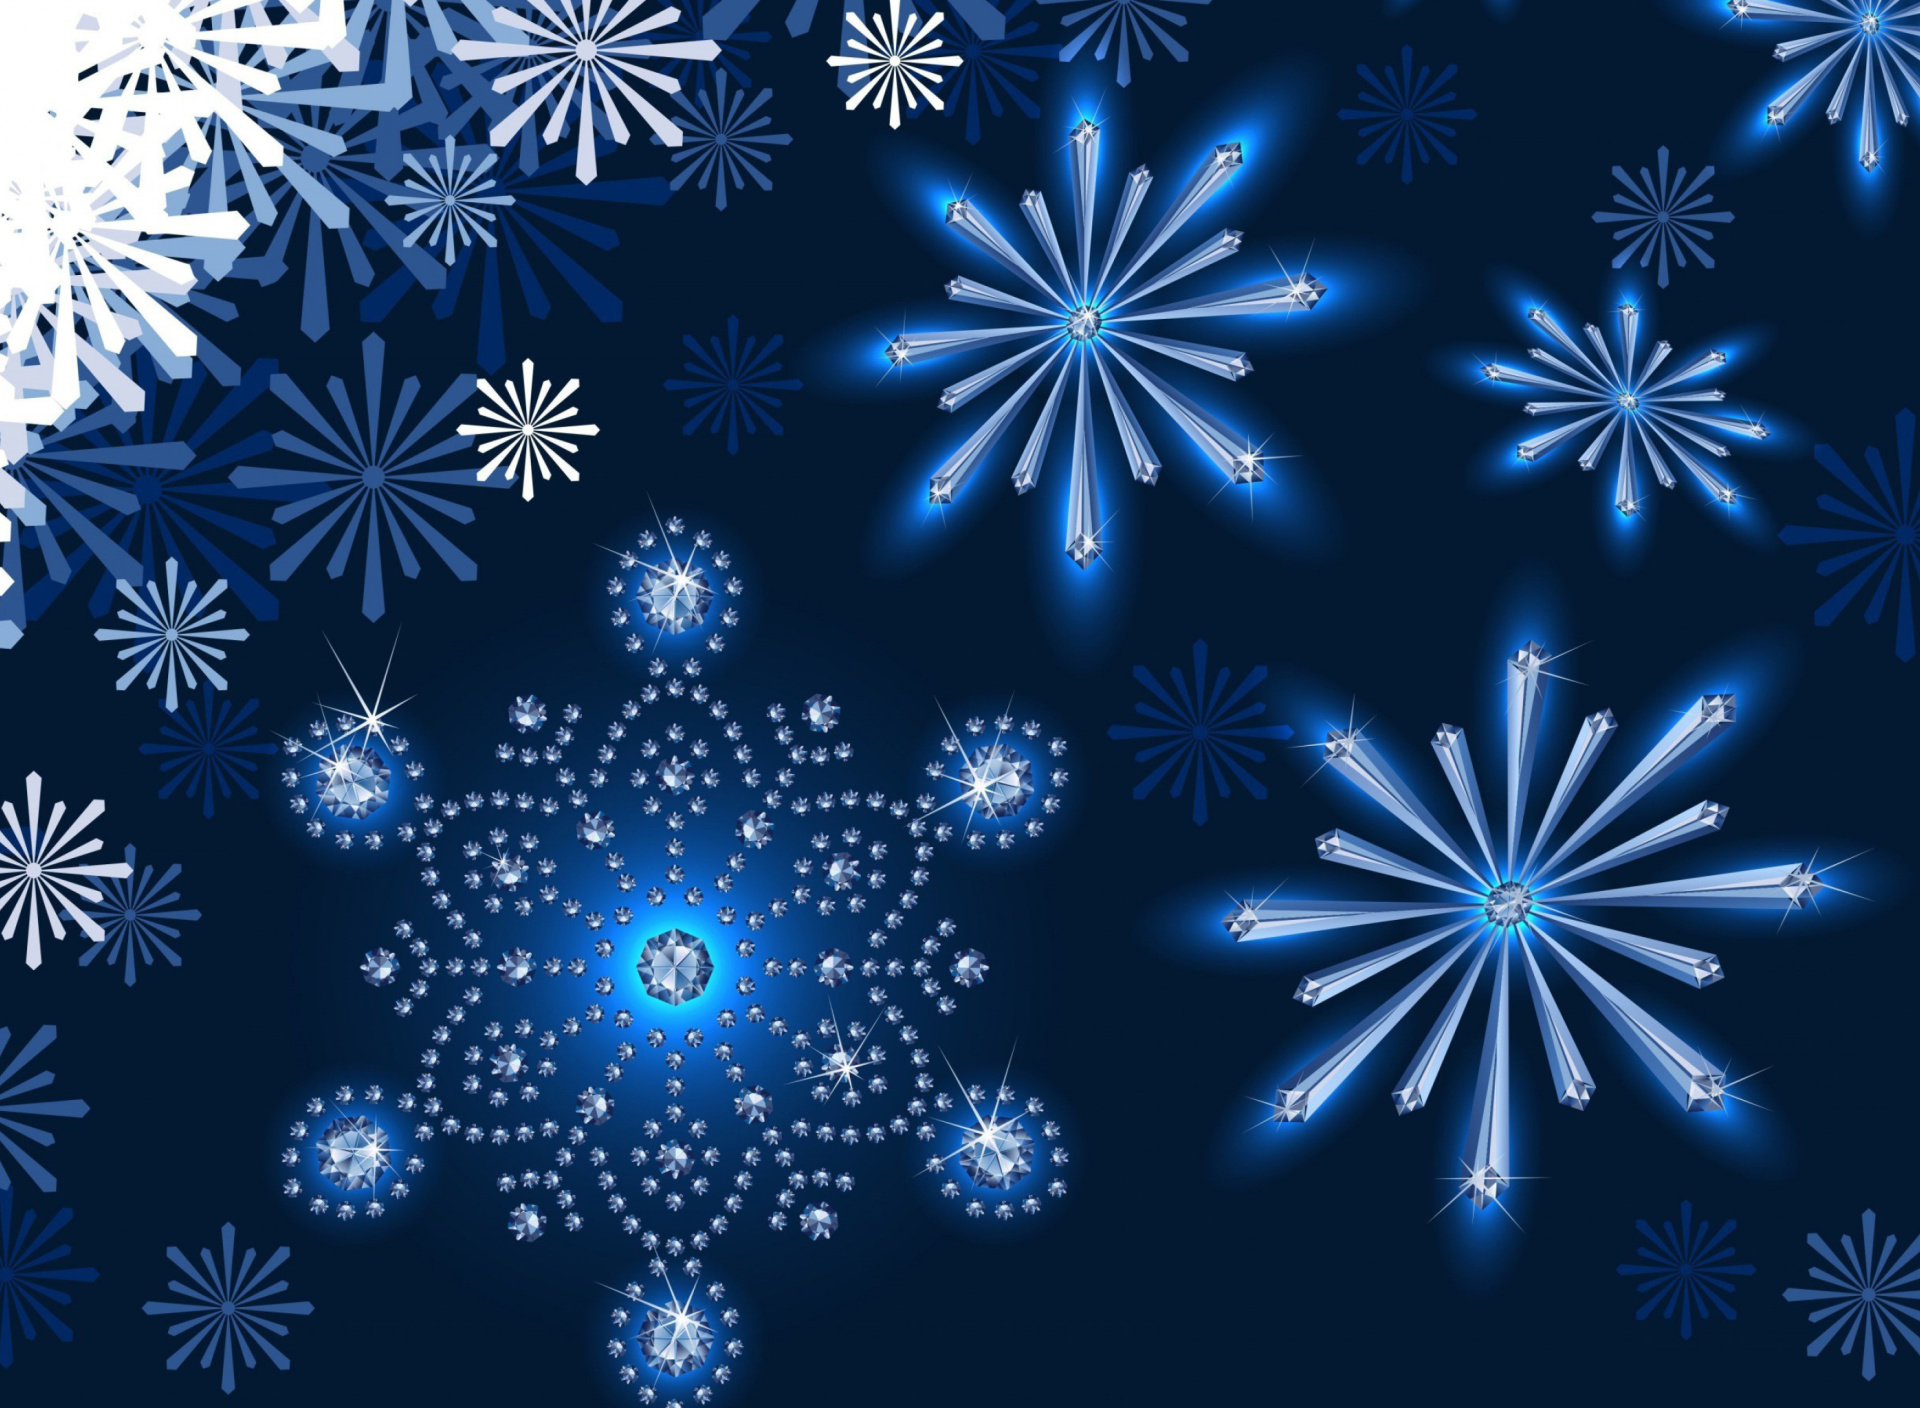 Snowflakes Ornament wallpaper 1920x1408